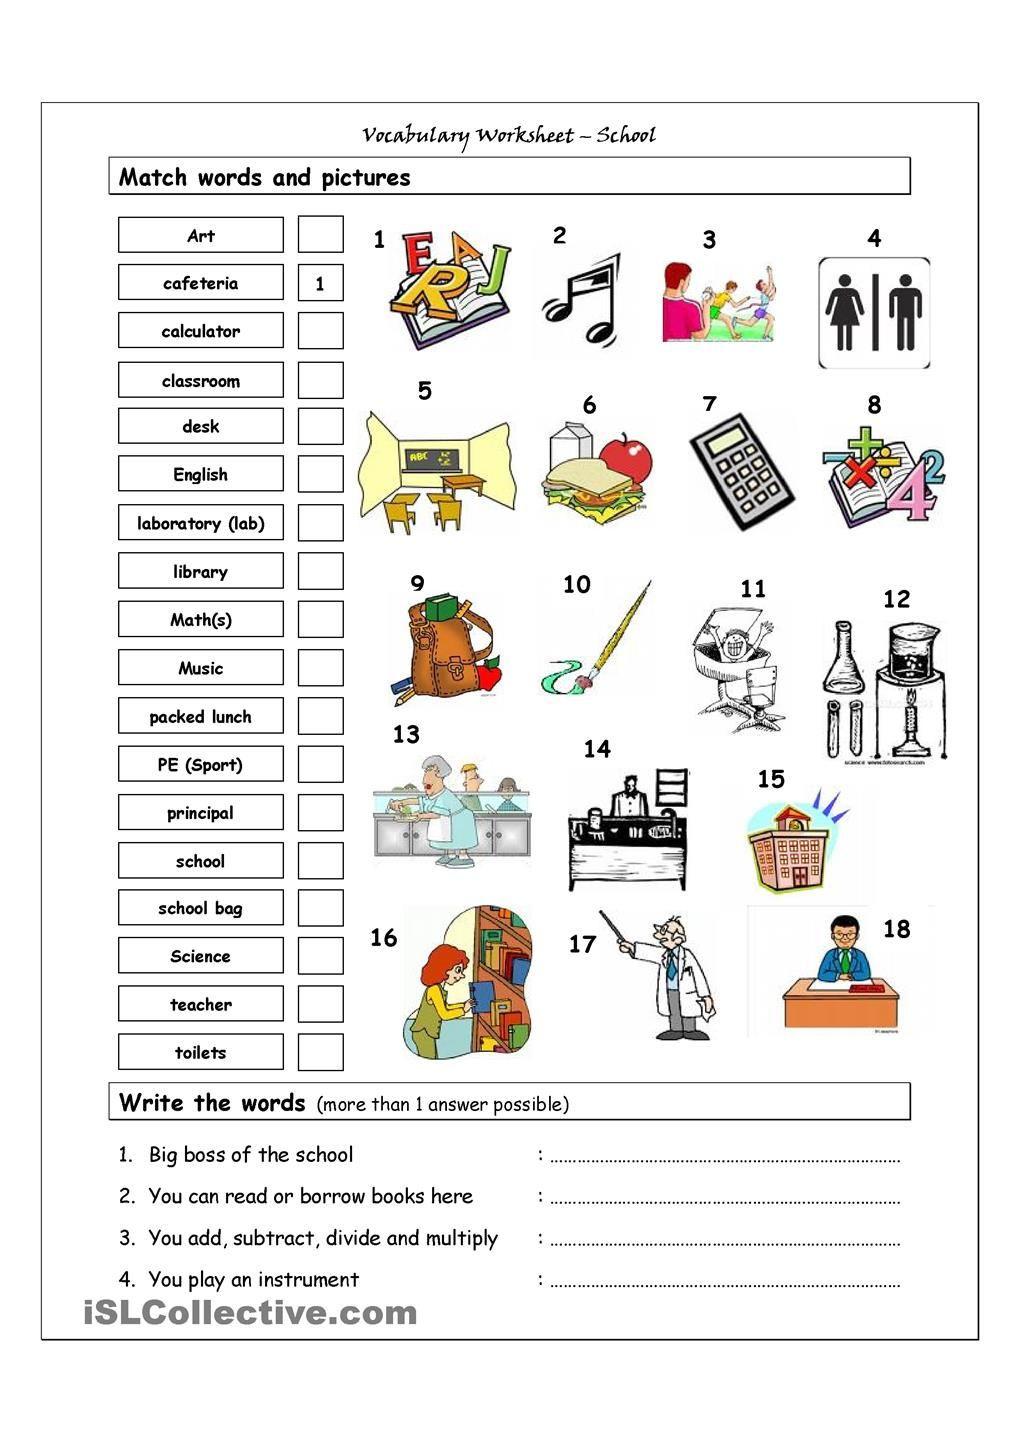 Vocabulary Worksheets for 1st Graders Vocabulary Matching Worksheet School